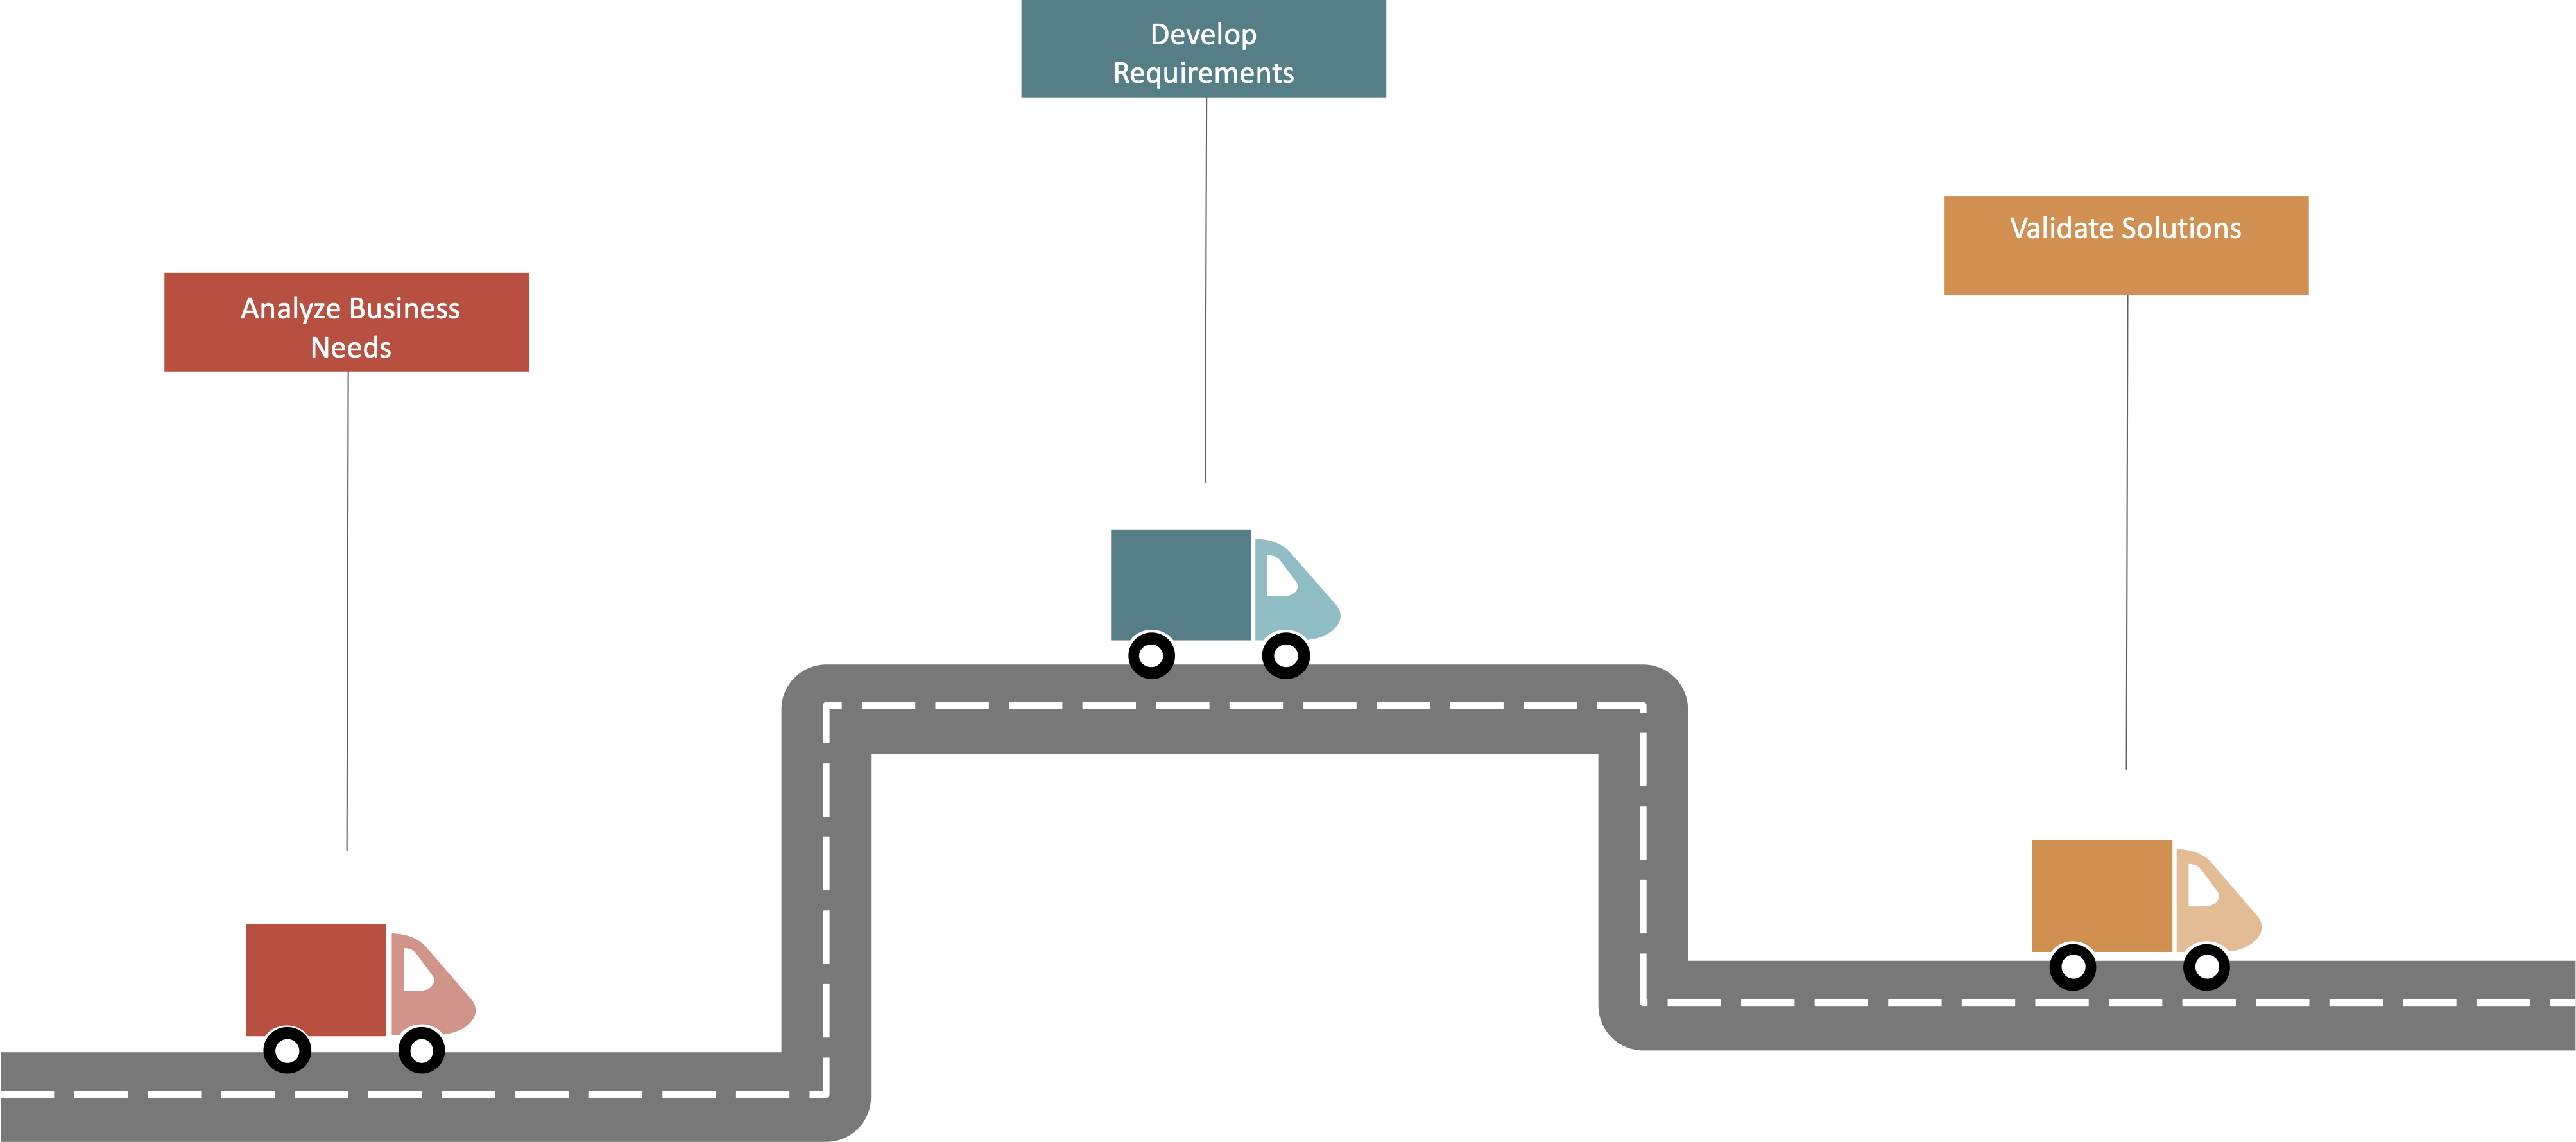 trucks symbolizing analyzing business needs, developing requirements, and validating solutions